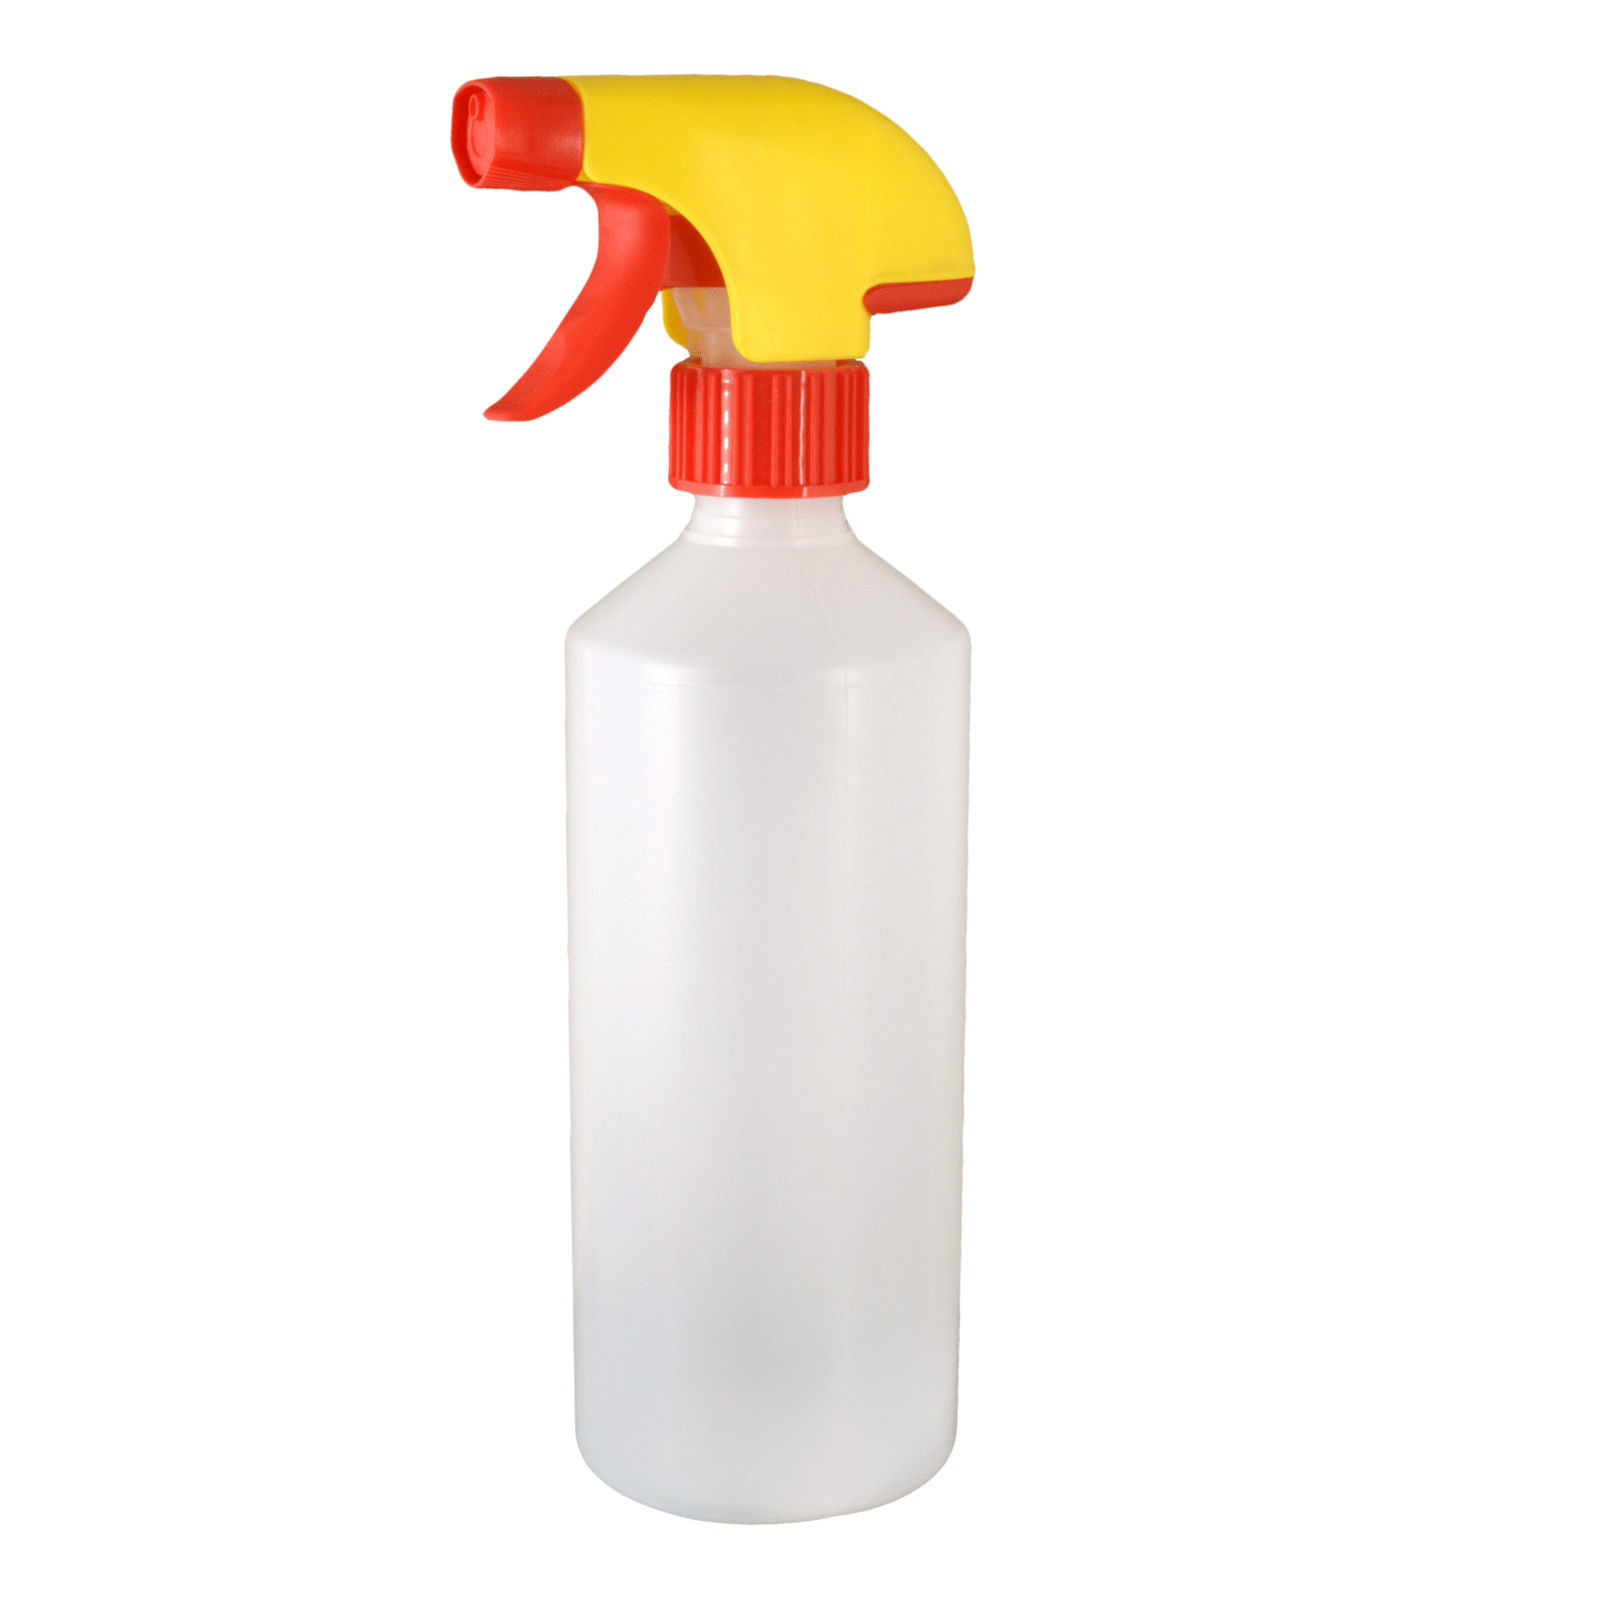 1L HDPE Bottle Pack with Red/Yellow Trigger Spray